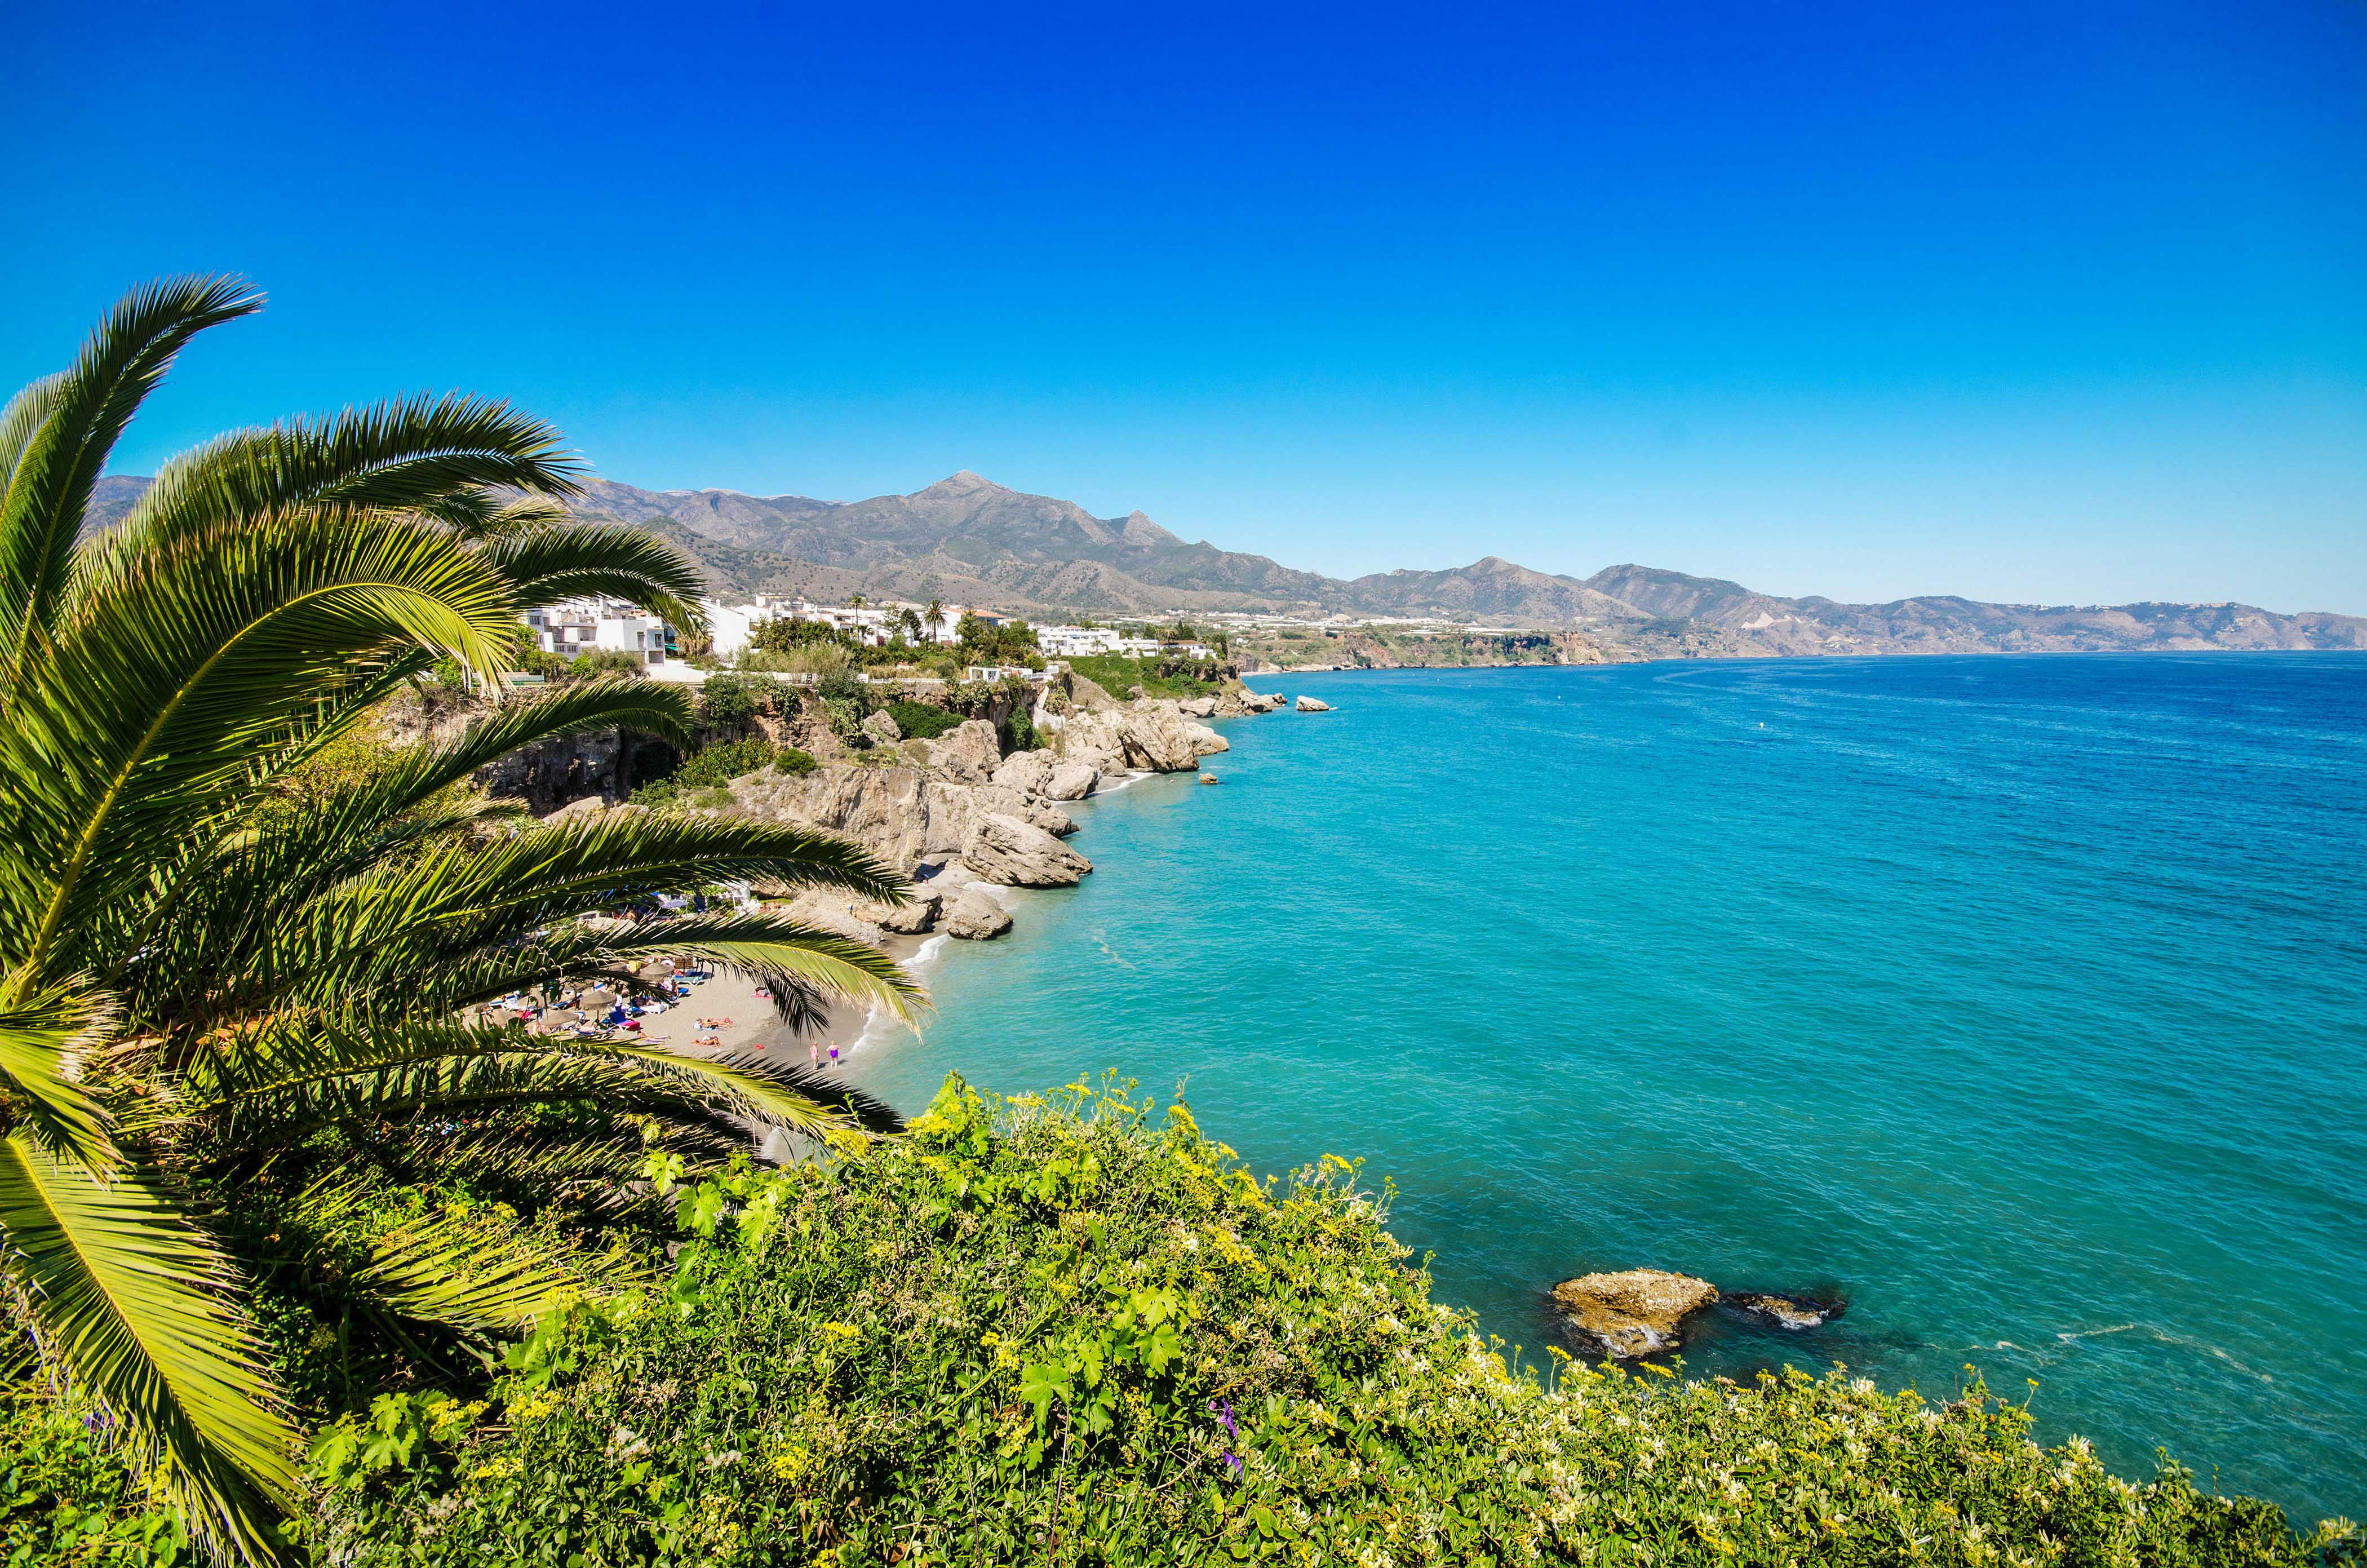 Andalusien, Nerja beach, famous touristic town, costa del sol, Málaga, Spain.